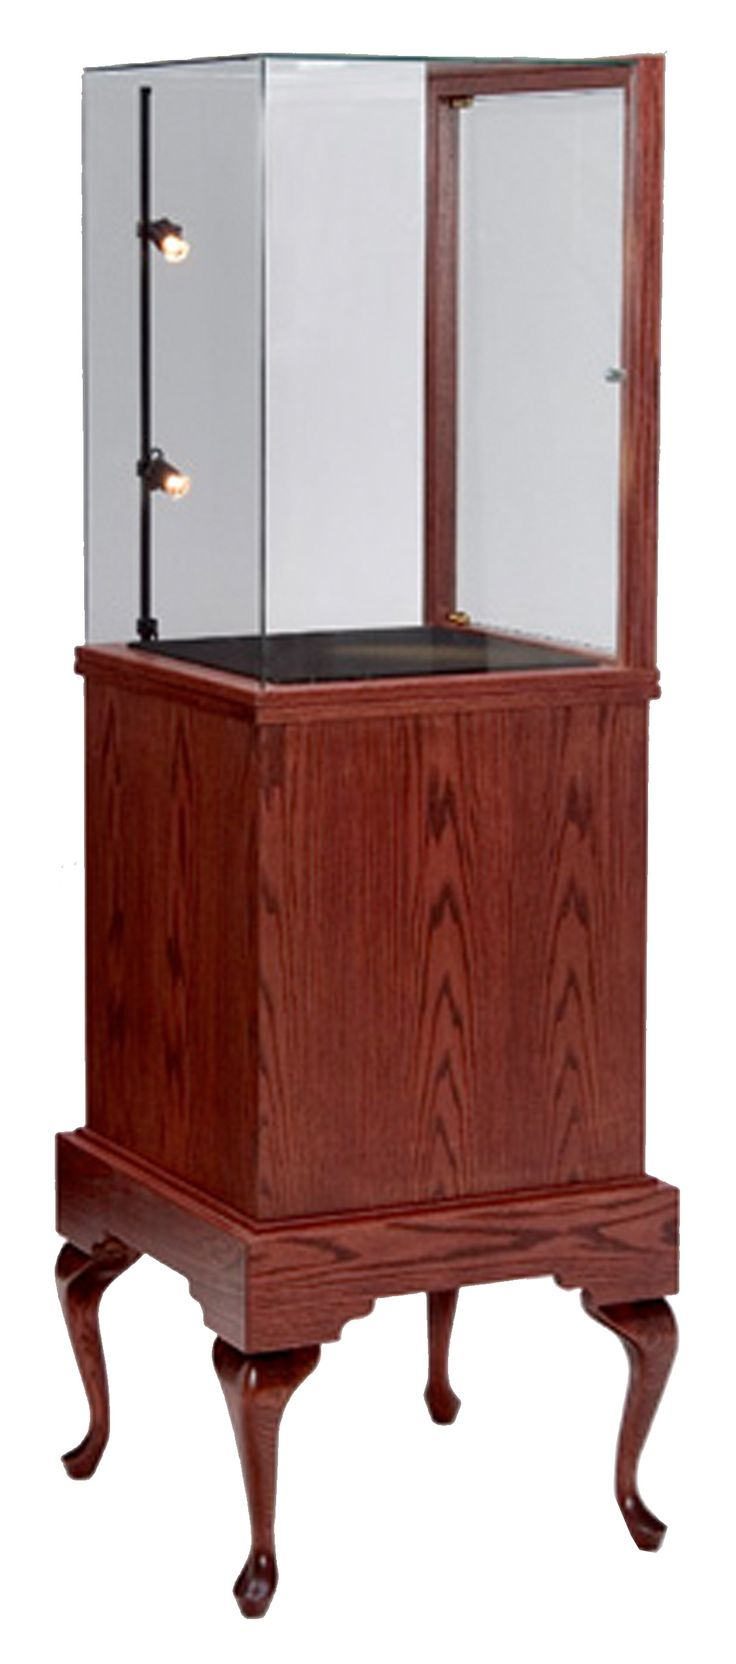 Queen Anne Half Vision Pedestal Glass-on-Glass with Storage http://custom.display-smart.com/pedestal-display-cases/queen-anne-half-vison-pedestal-display-case-ggs.html